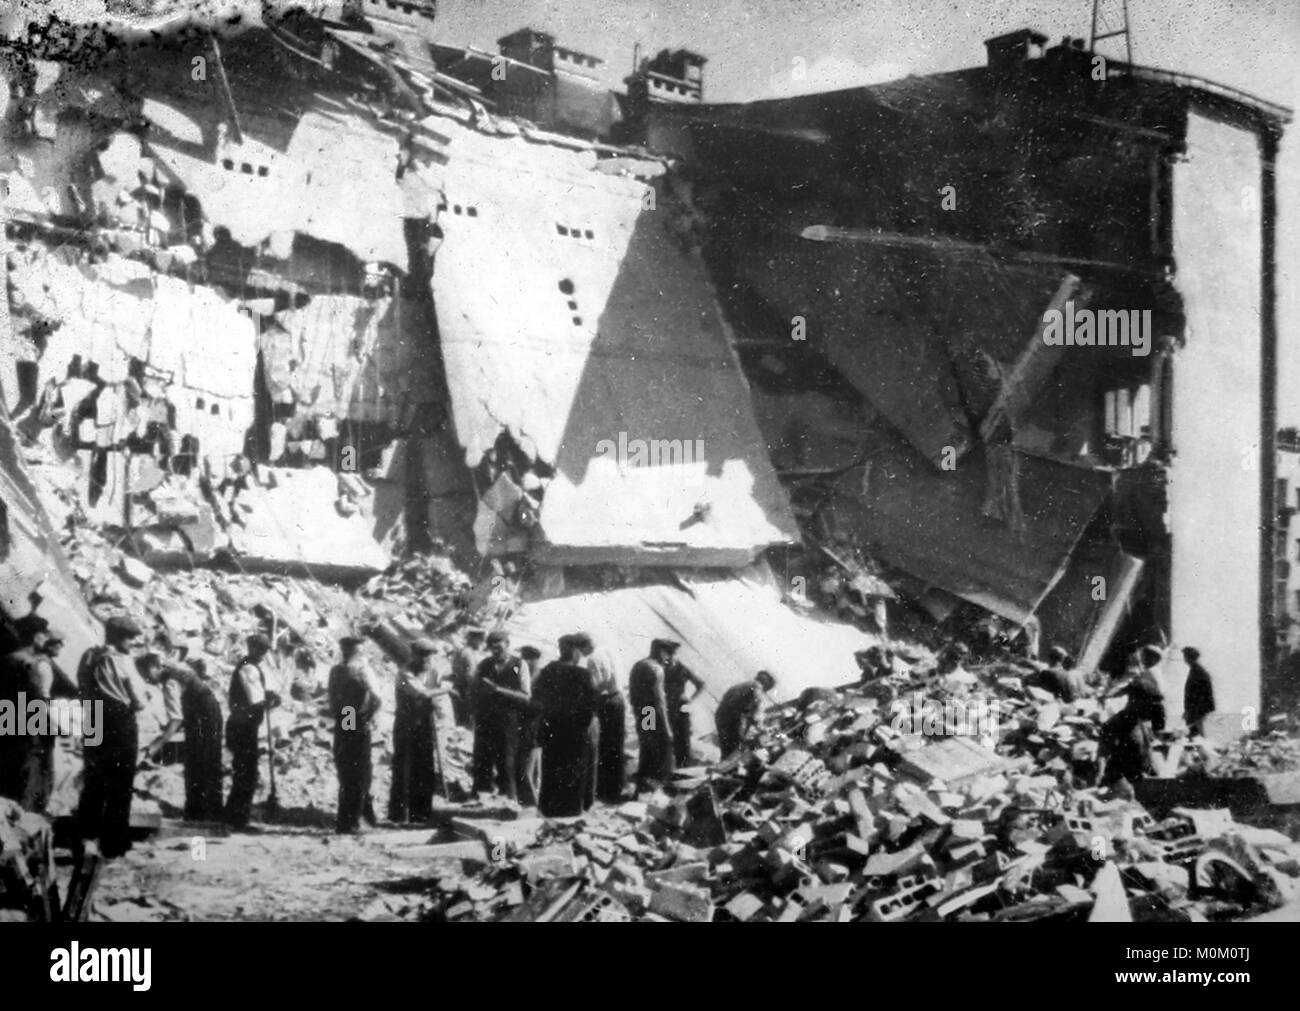 Air raid damage in Poland, WW2 - Stock Image